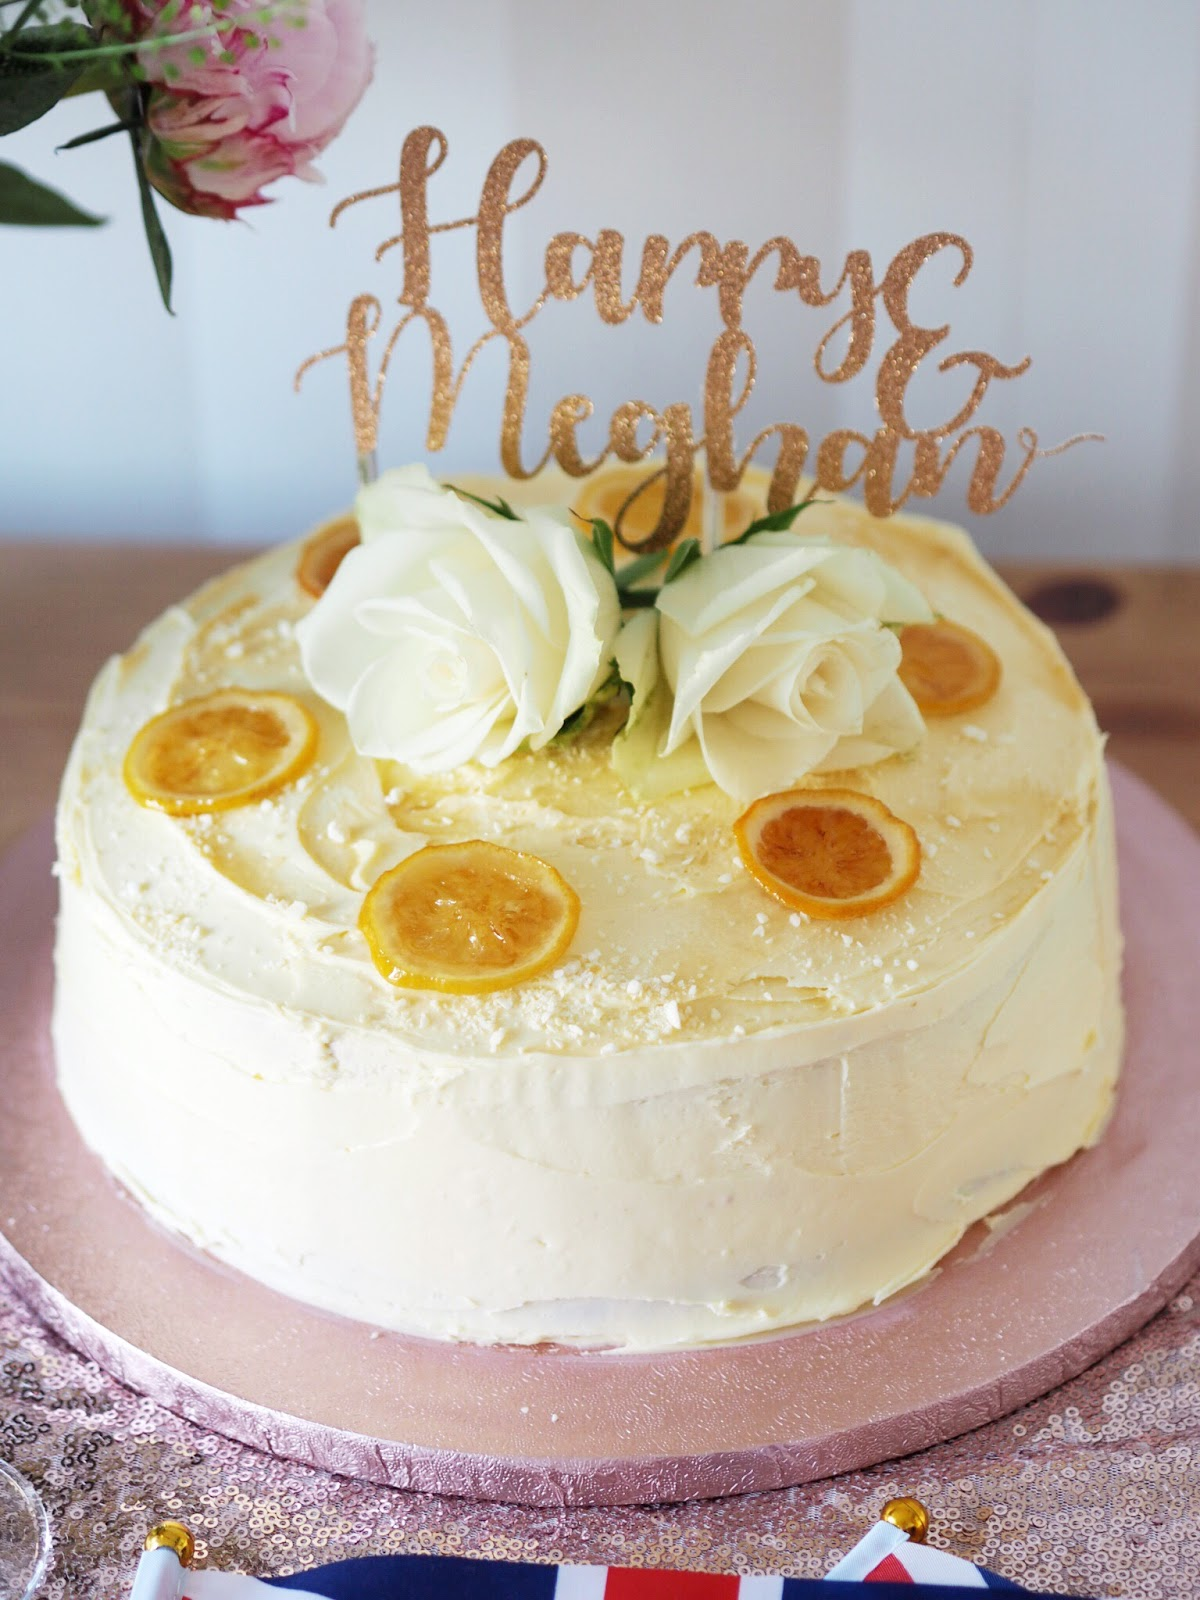 Royal Wedding Lemon & ELderflower cake recipe with Rose gold glitter Harry & Meghan cake topper